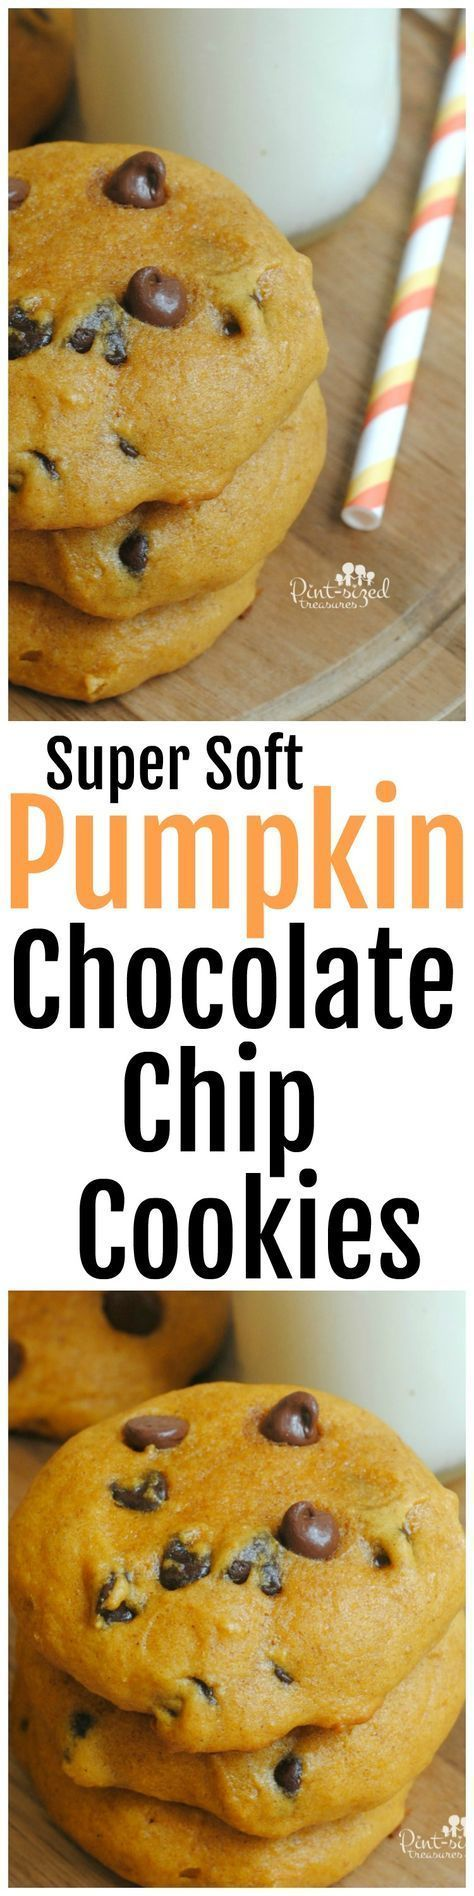 Super soft Pumpkin Chocolate chip cookies is the perfect recipe to bring pumpkin pie and chocolate cookie fans together! This super soft cookie wraps classic fave pumpkin flavors together with tiny bits of luscious chocolate. Baked for the perfect amount of time and mixed just right, these cookies turn out gorgeous, super soft and ready to nibble!